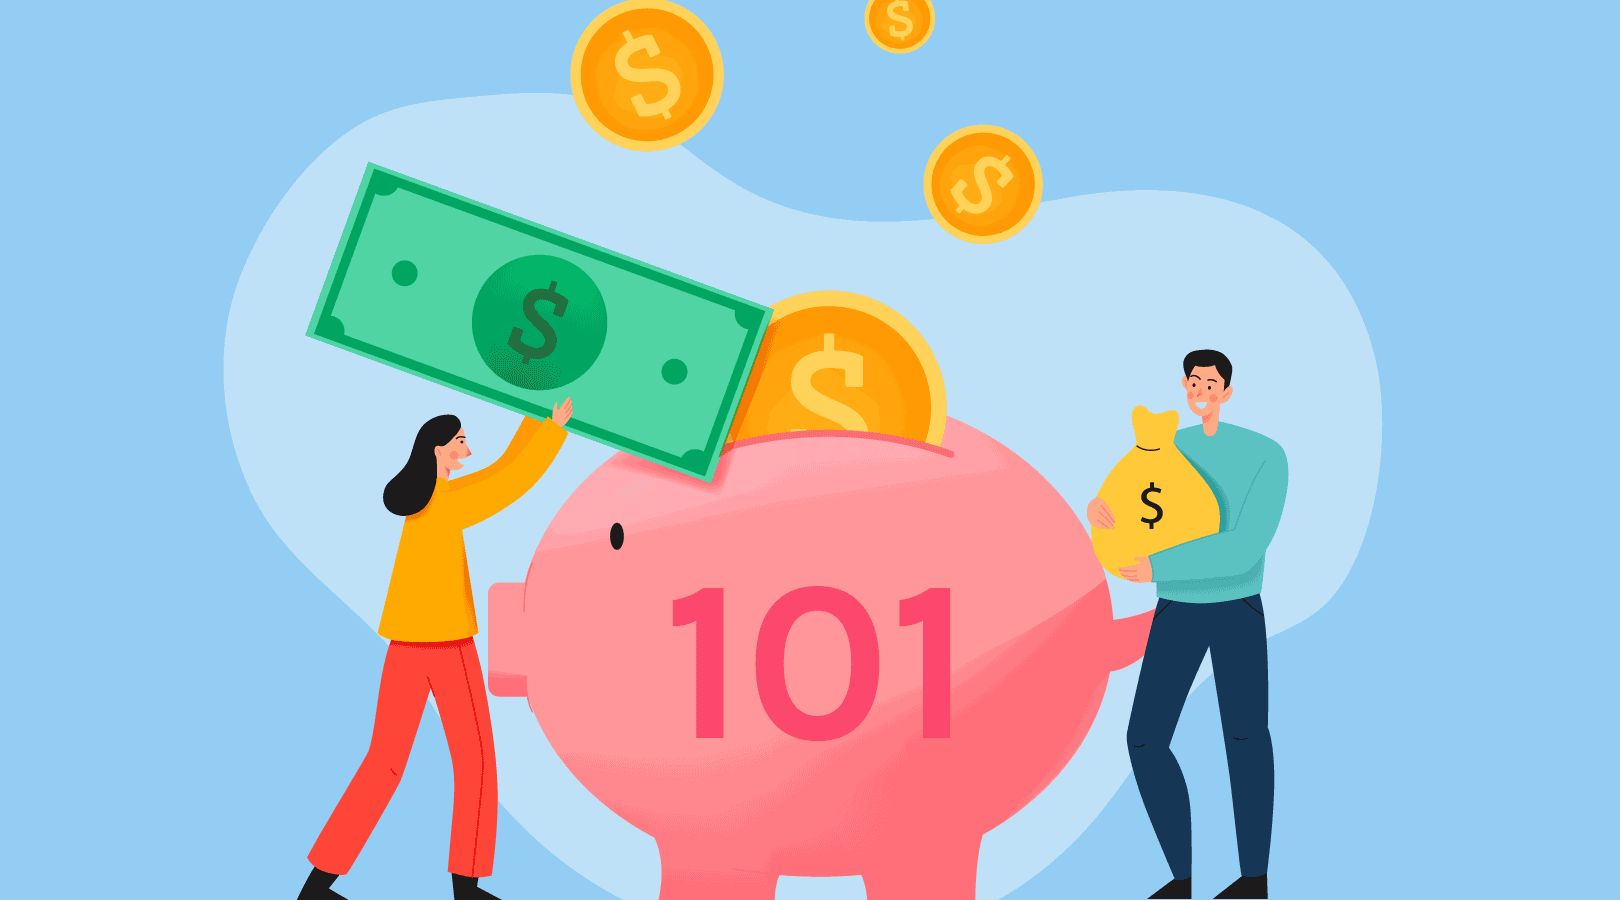 Crowdfunding 101: A Guide to Creating Successful Campaigns